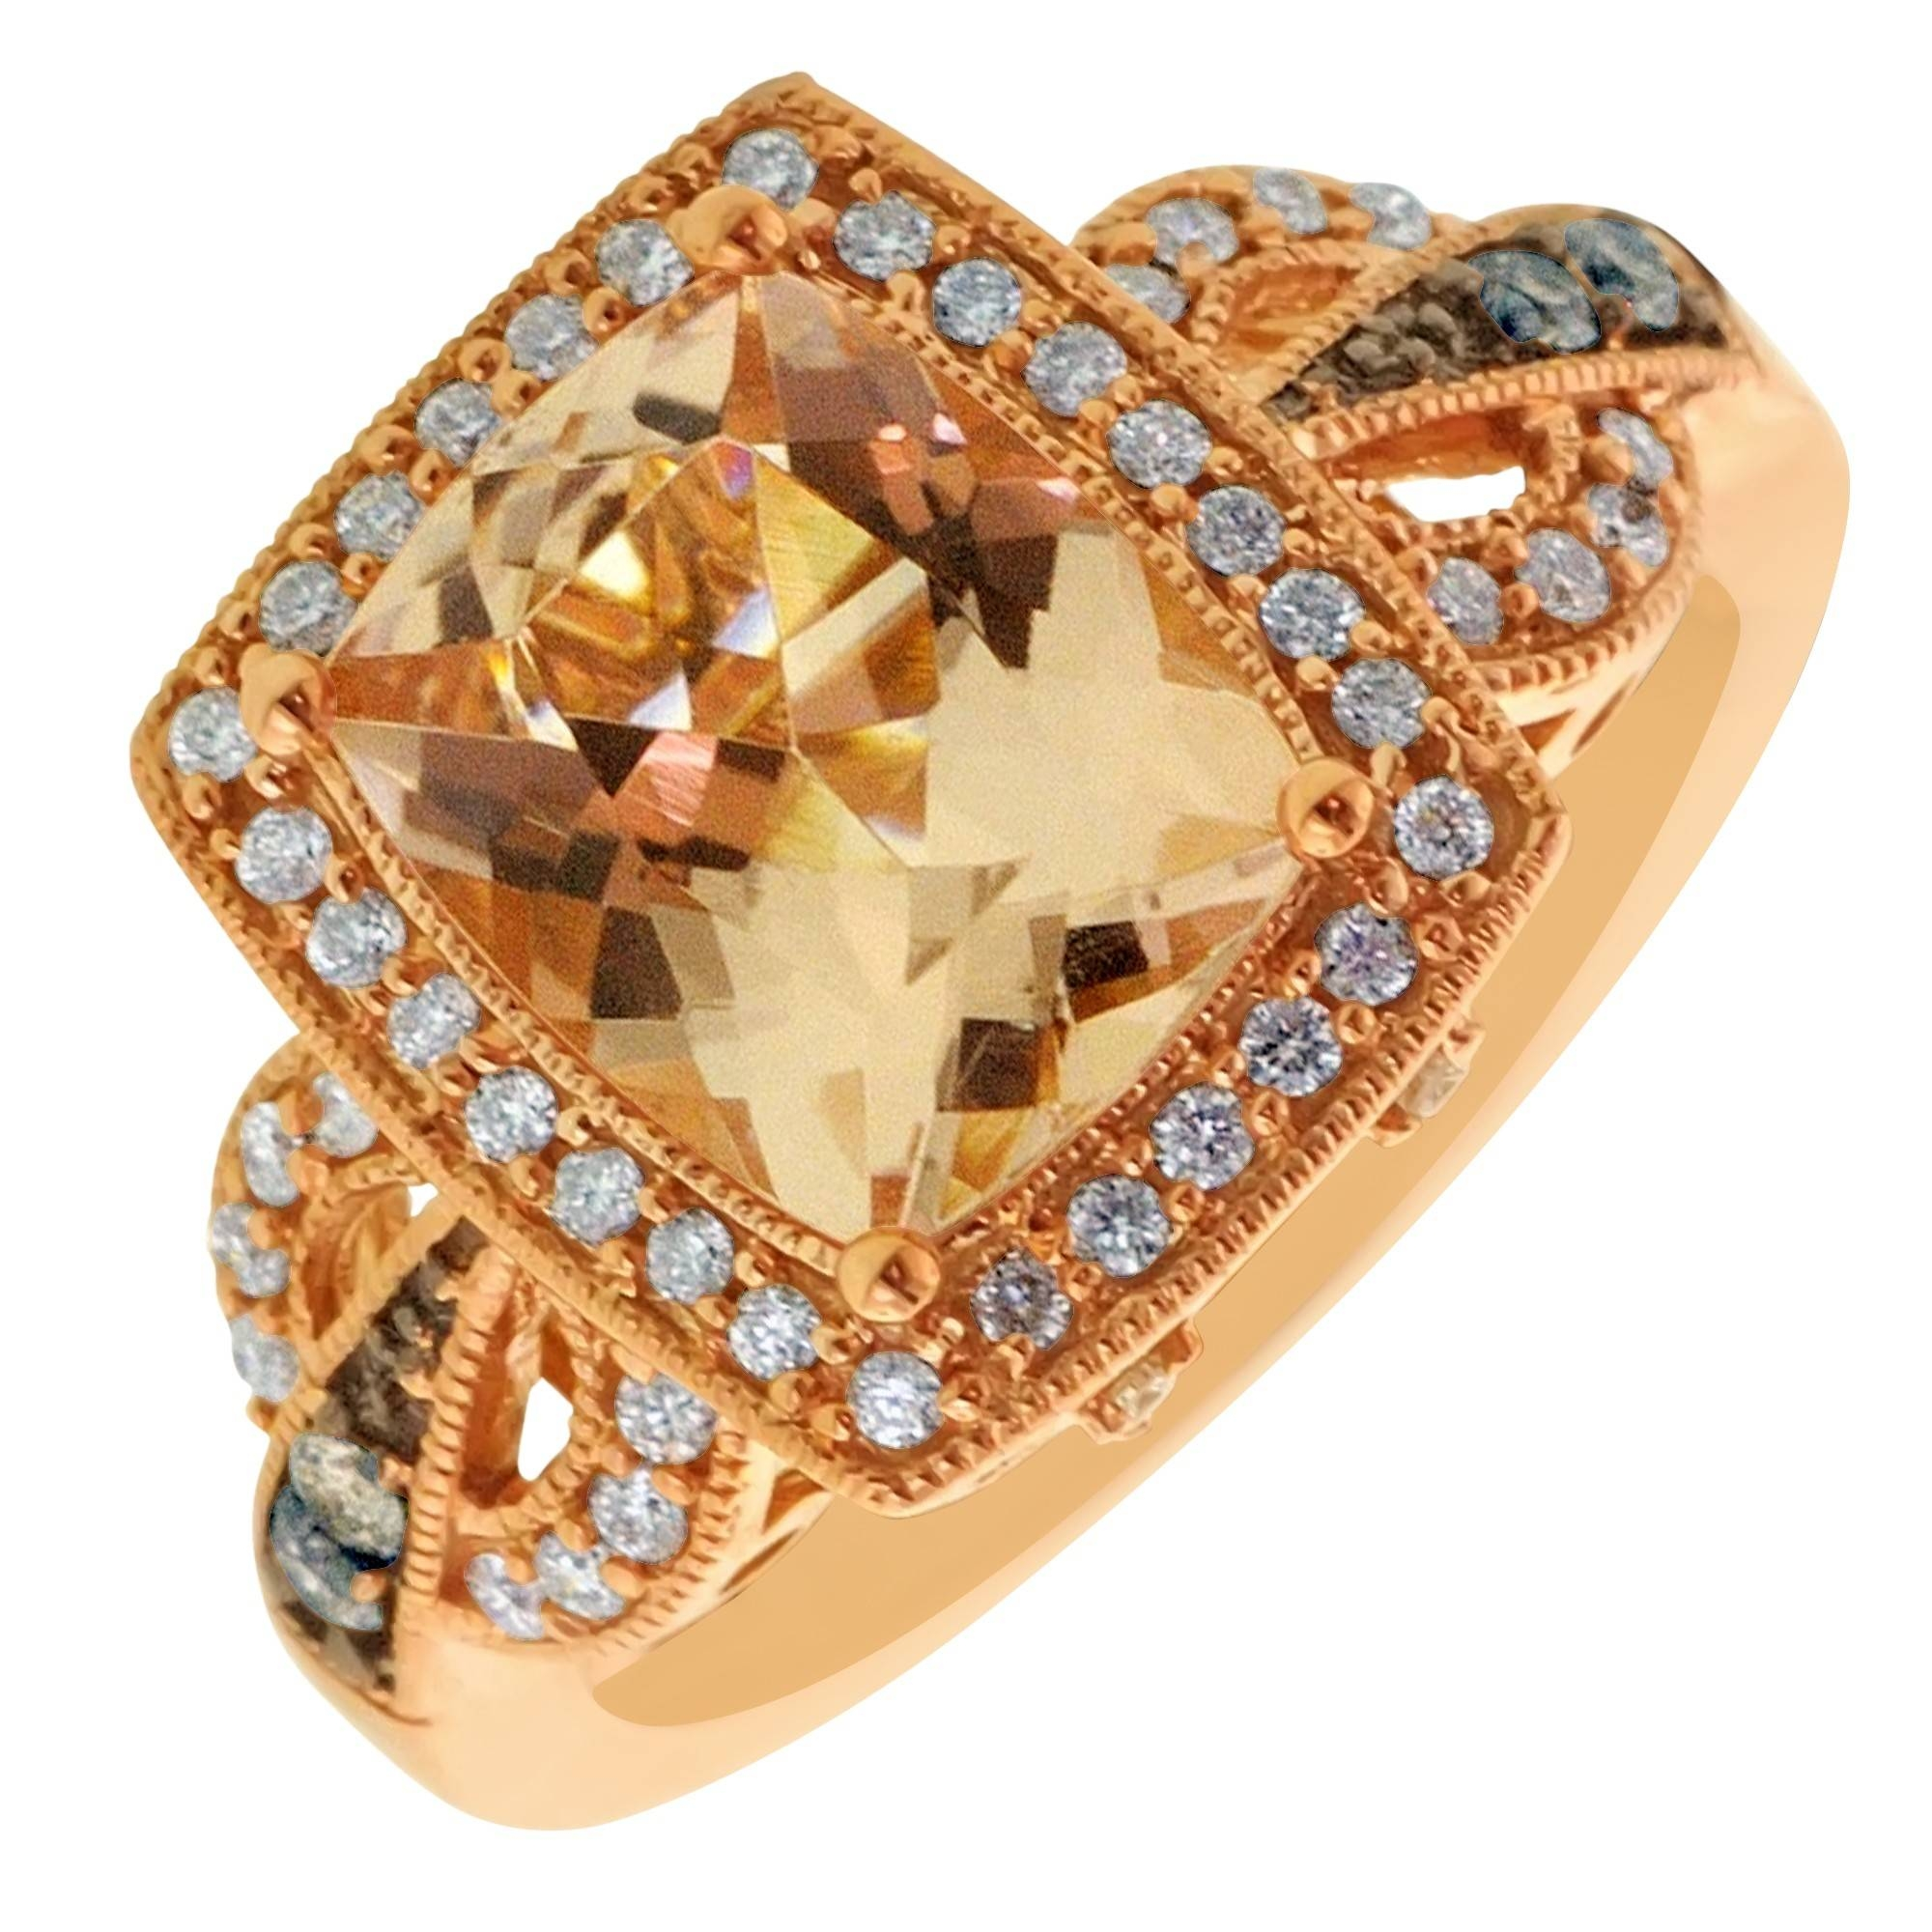 ashworthmairsgroup chocolate beautiful idea elegant pics wedding diamonds fresh diamond of rings